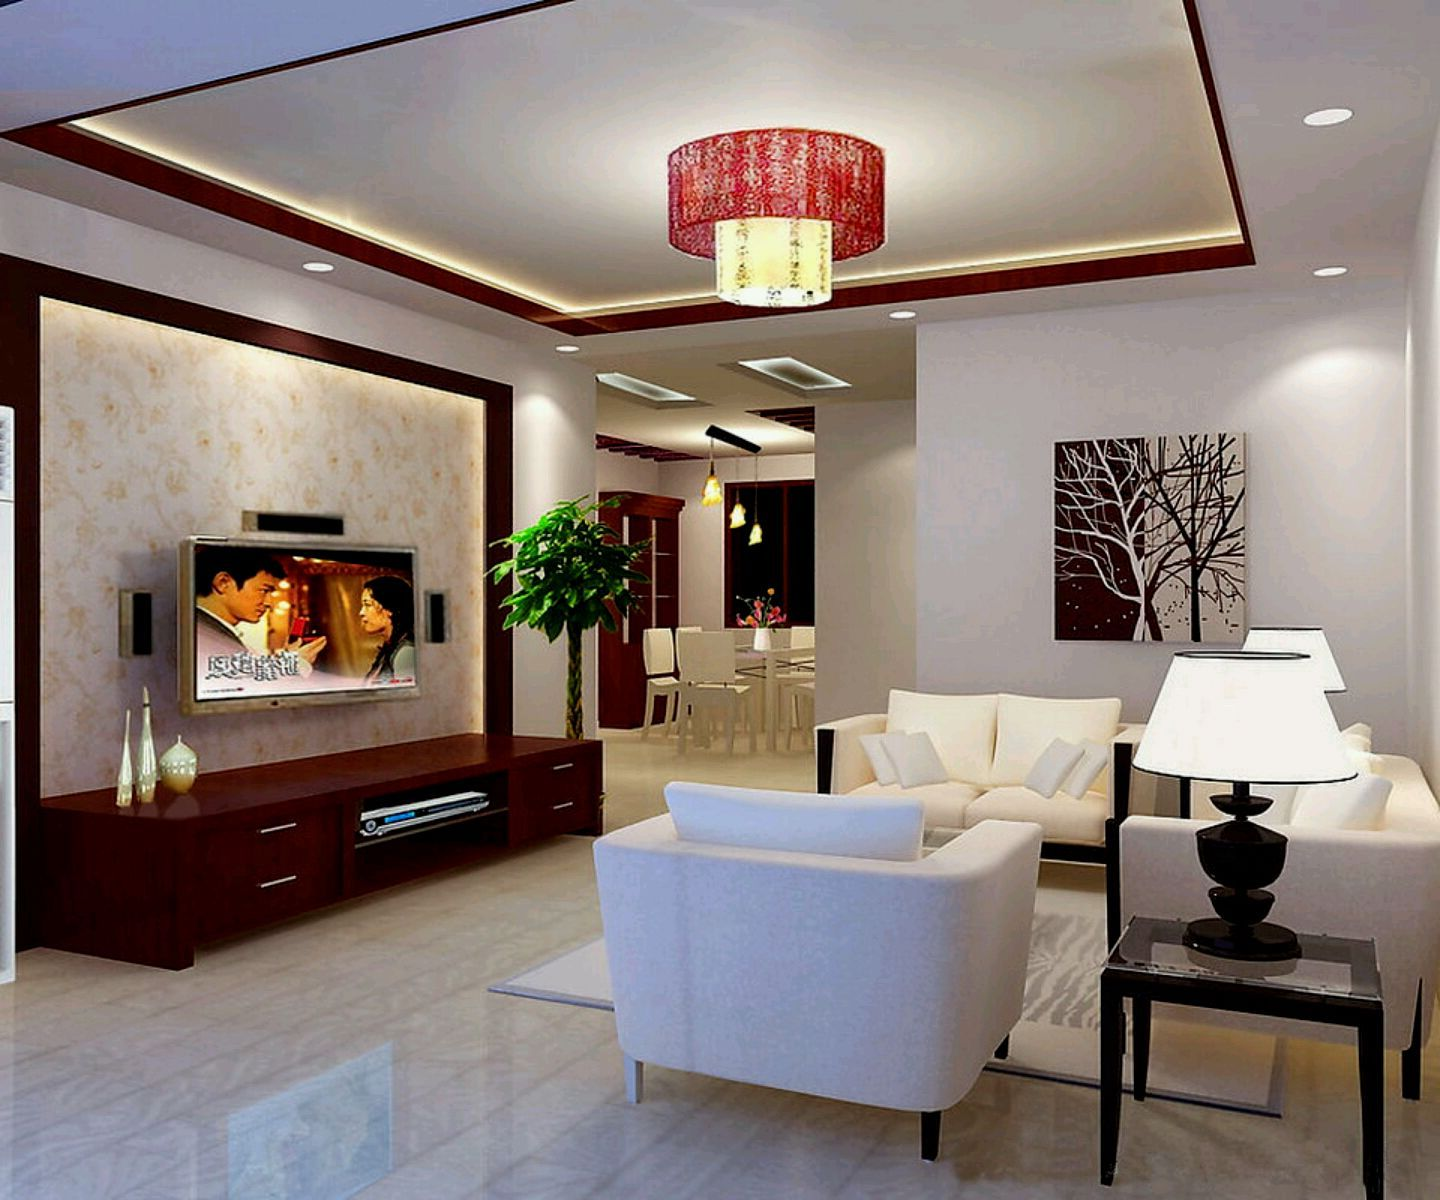 Ceiling Designs For Bedrooms Unique Ceilingdesignfordrawingroominpakistanceilingdesignsfor Design Ideas